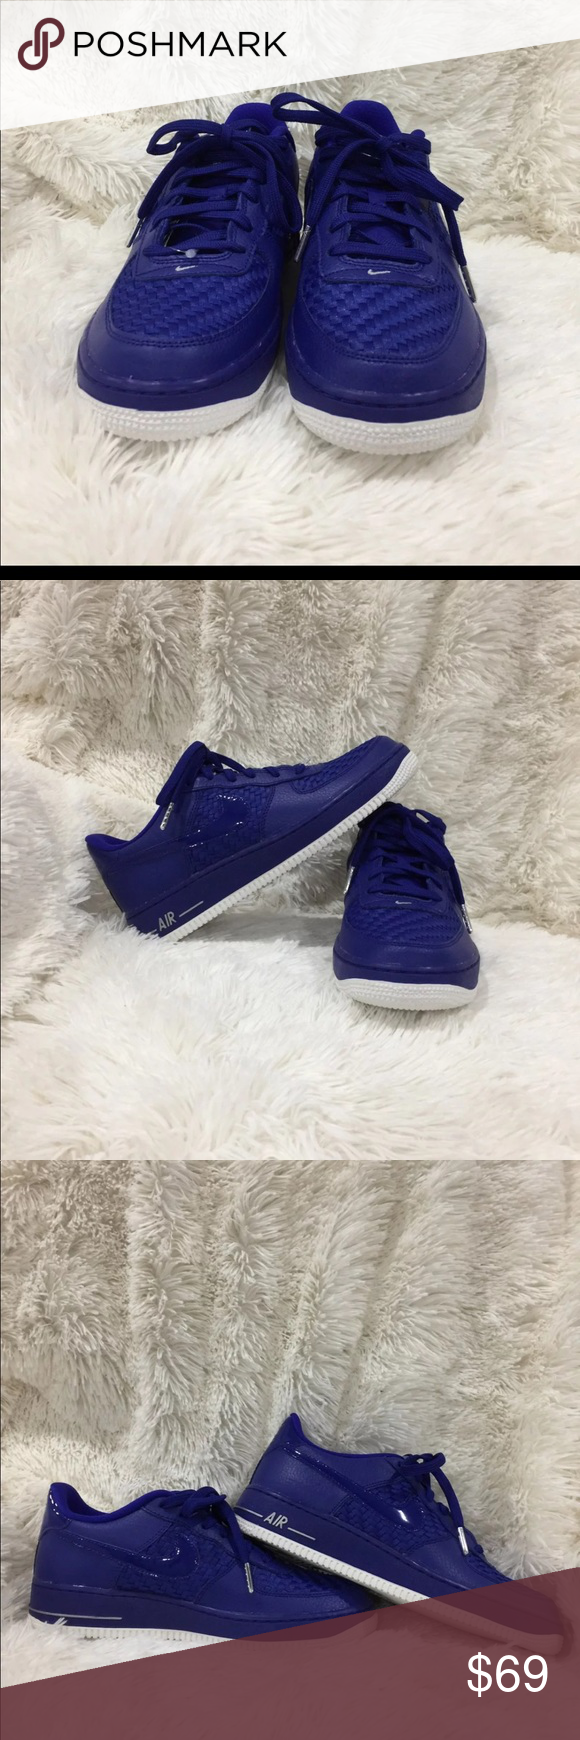 nike air force 1 lv8 nwt pinterest nike air force air force e